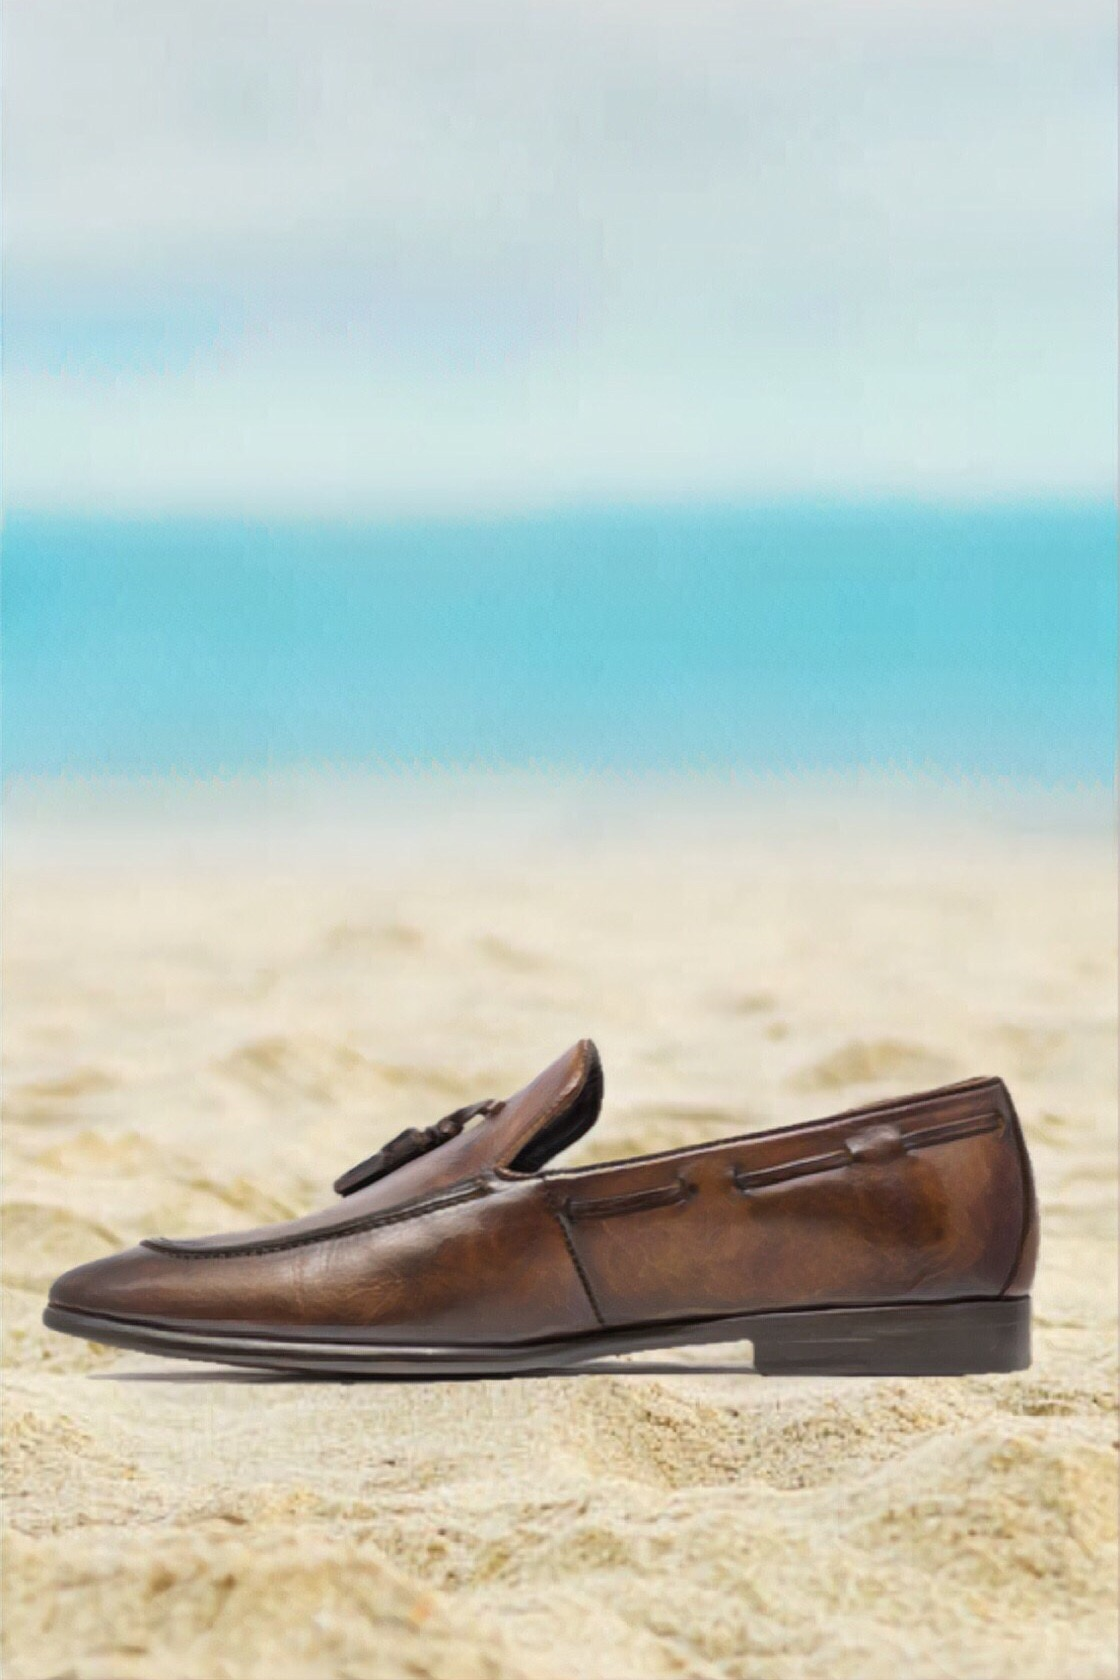 THE 403 RB CALFSKIN LOAFER - A rustic touch is sometimes the best way to relax. This breathable and elegant design in a smoked oak finish will keep you cool while still looking your best.Be sure to keep your no-show socks on to avoid ruining the tropical scent.